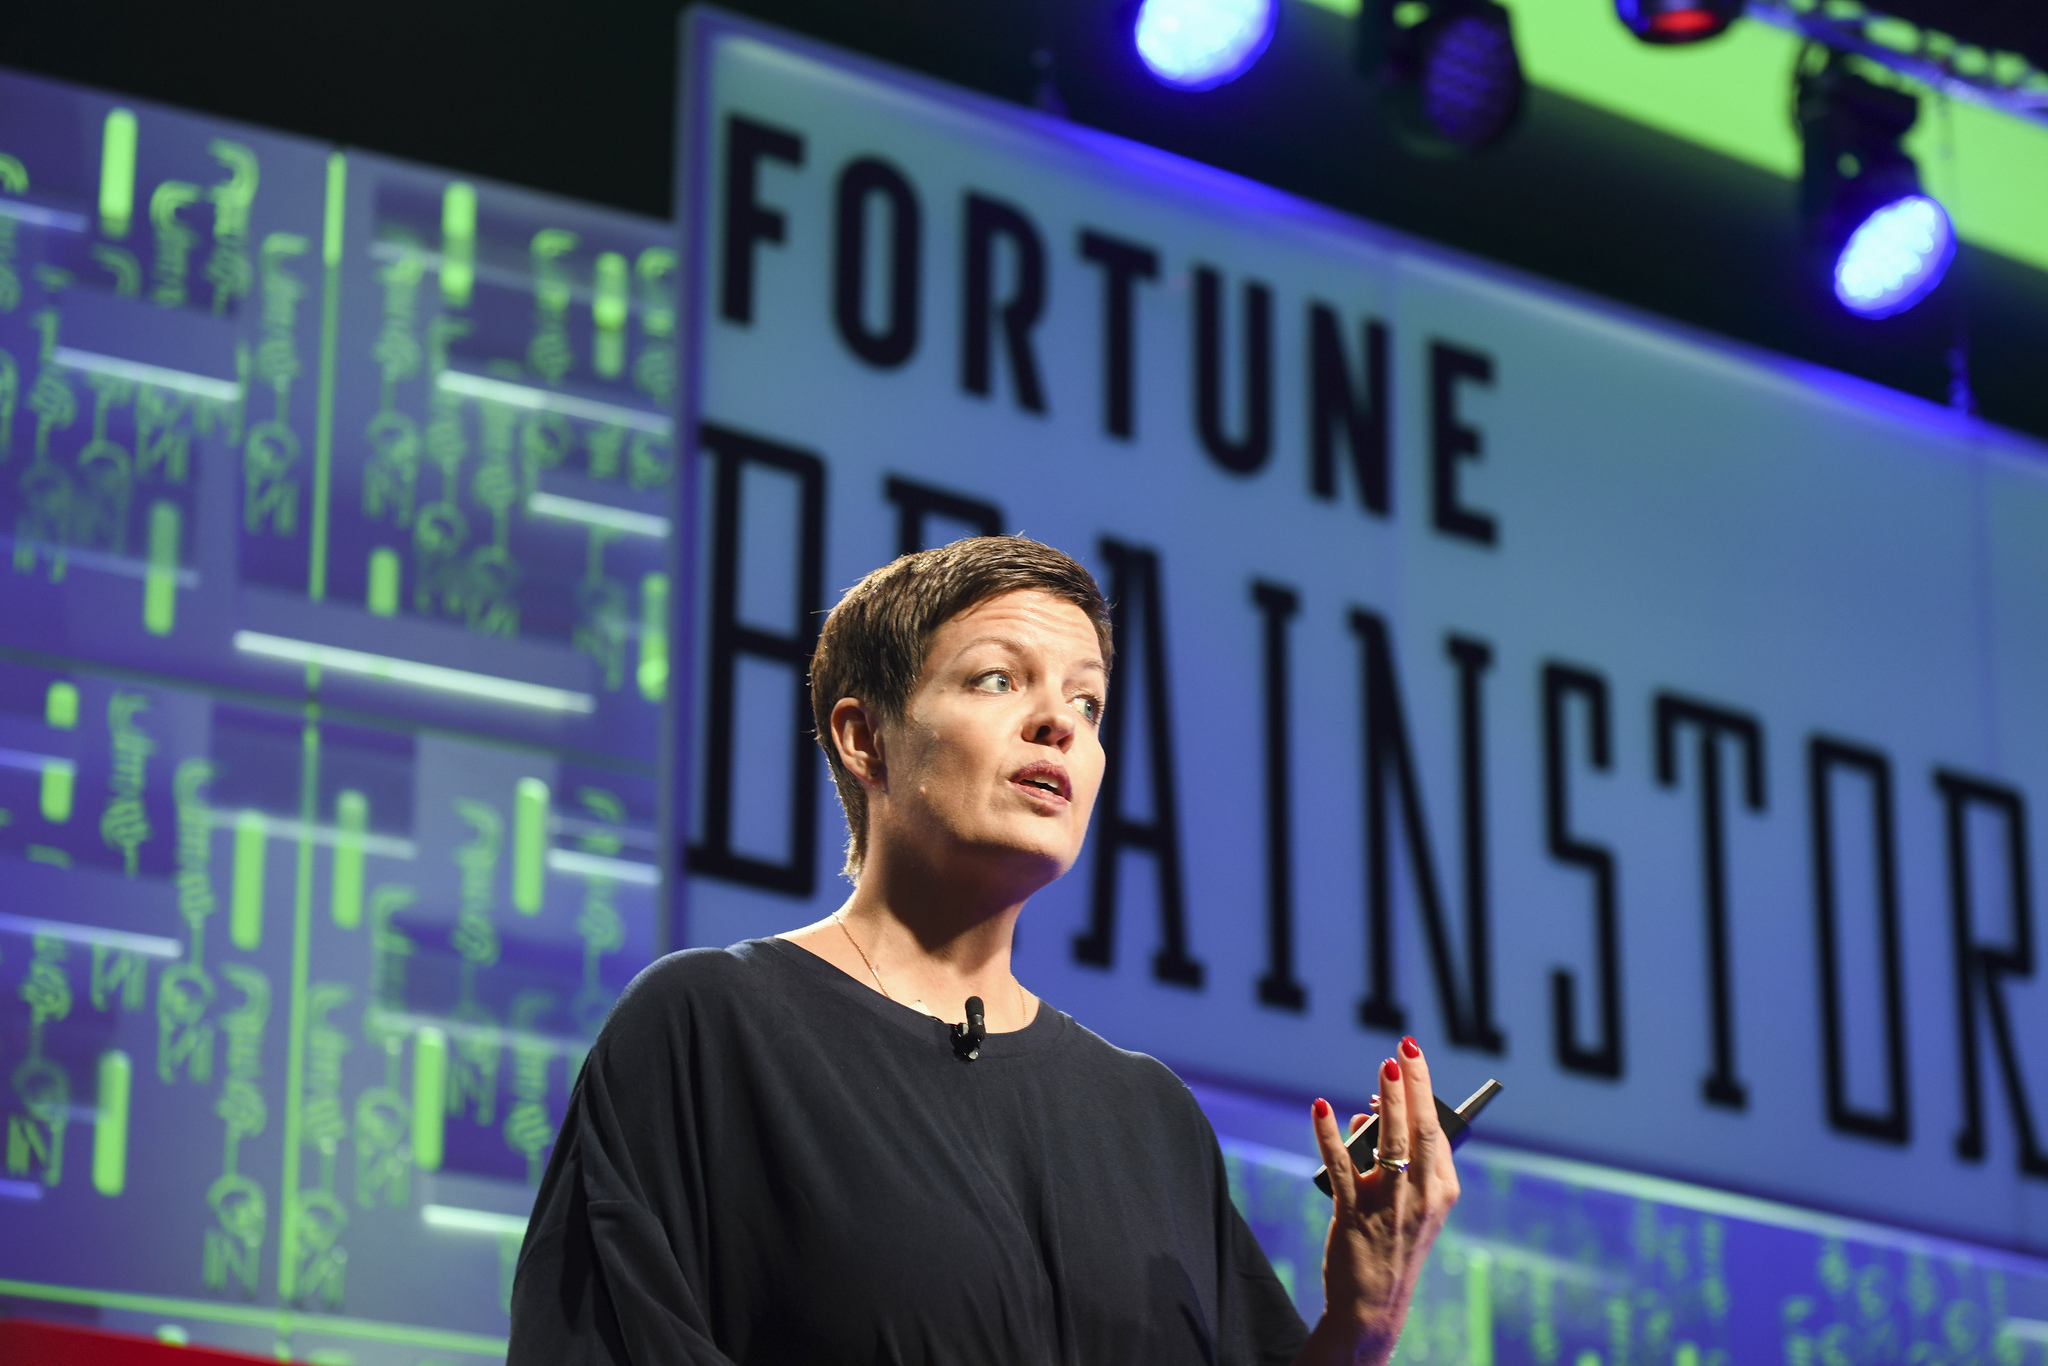 Helle Søholt, founding partner and CEO of Gehl, at the 2019 Fortune Brainstorm Design conference in Singapore.